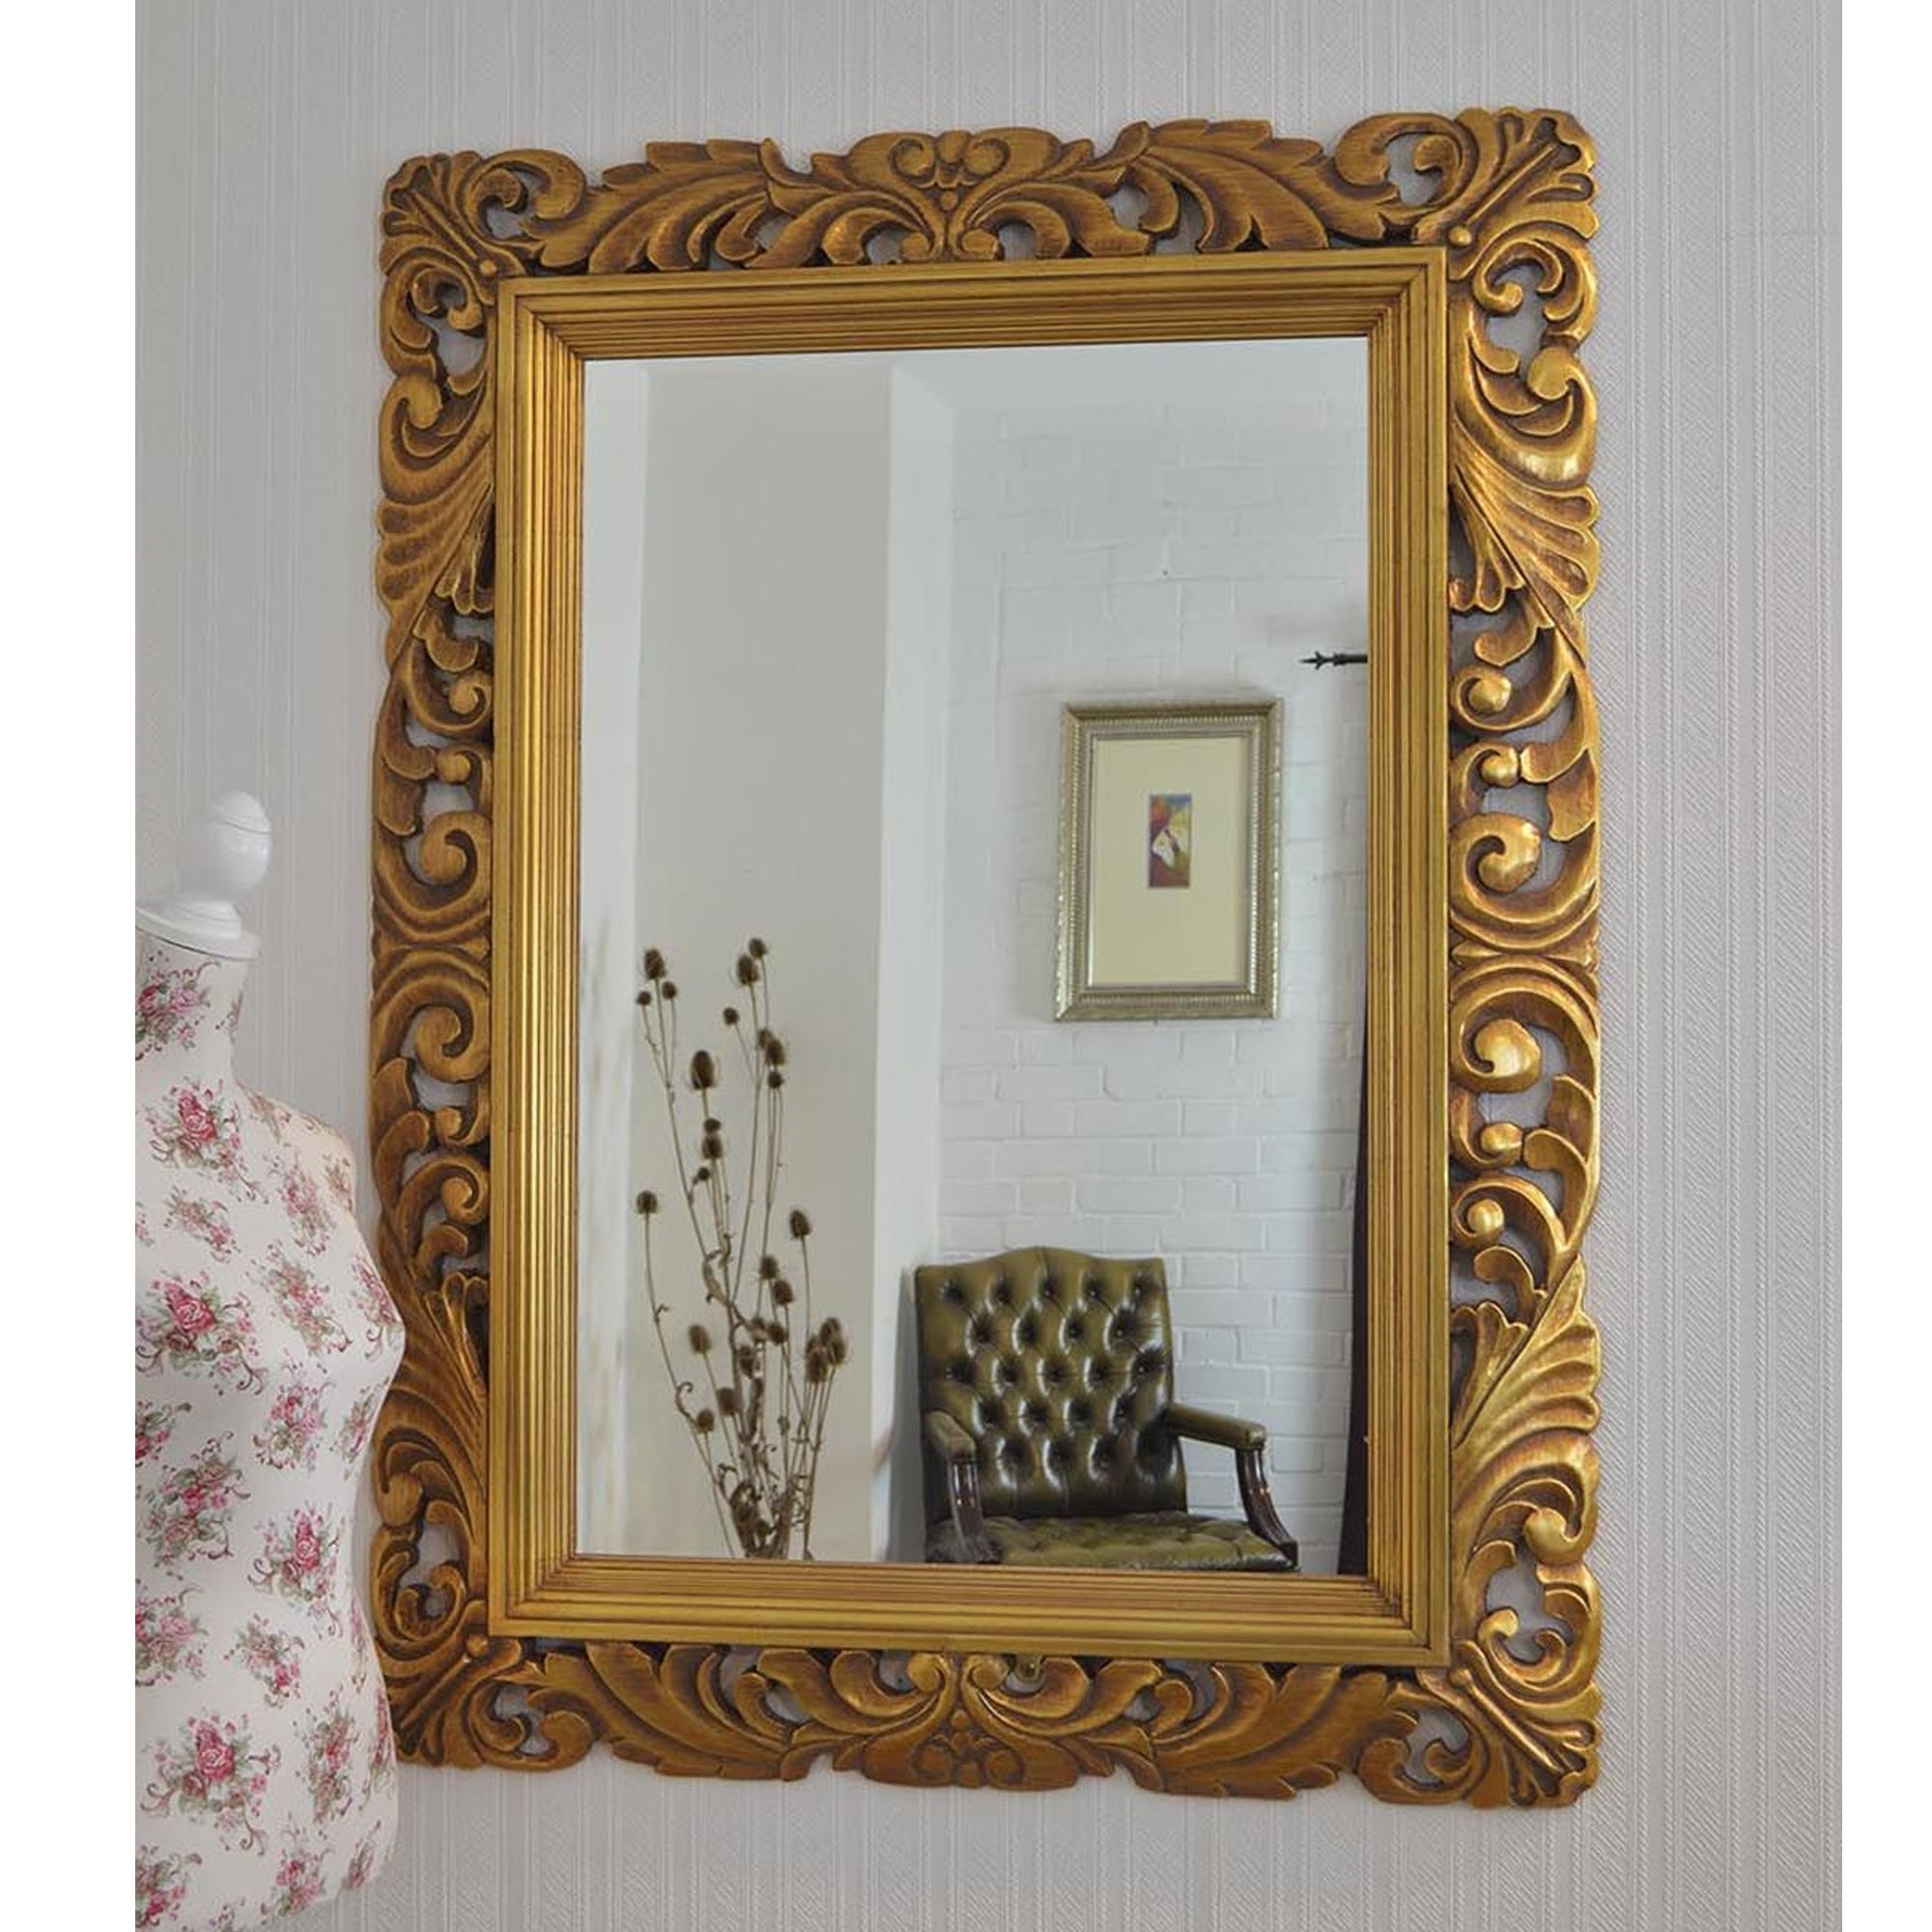 Antique Wall Mirrors Within Newest Ornate Framed Gold Antique French Style Wall Mirror (Gallery 6 of 20)